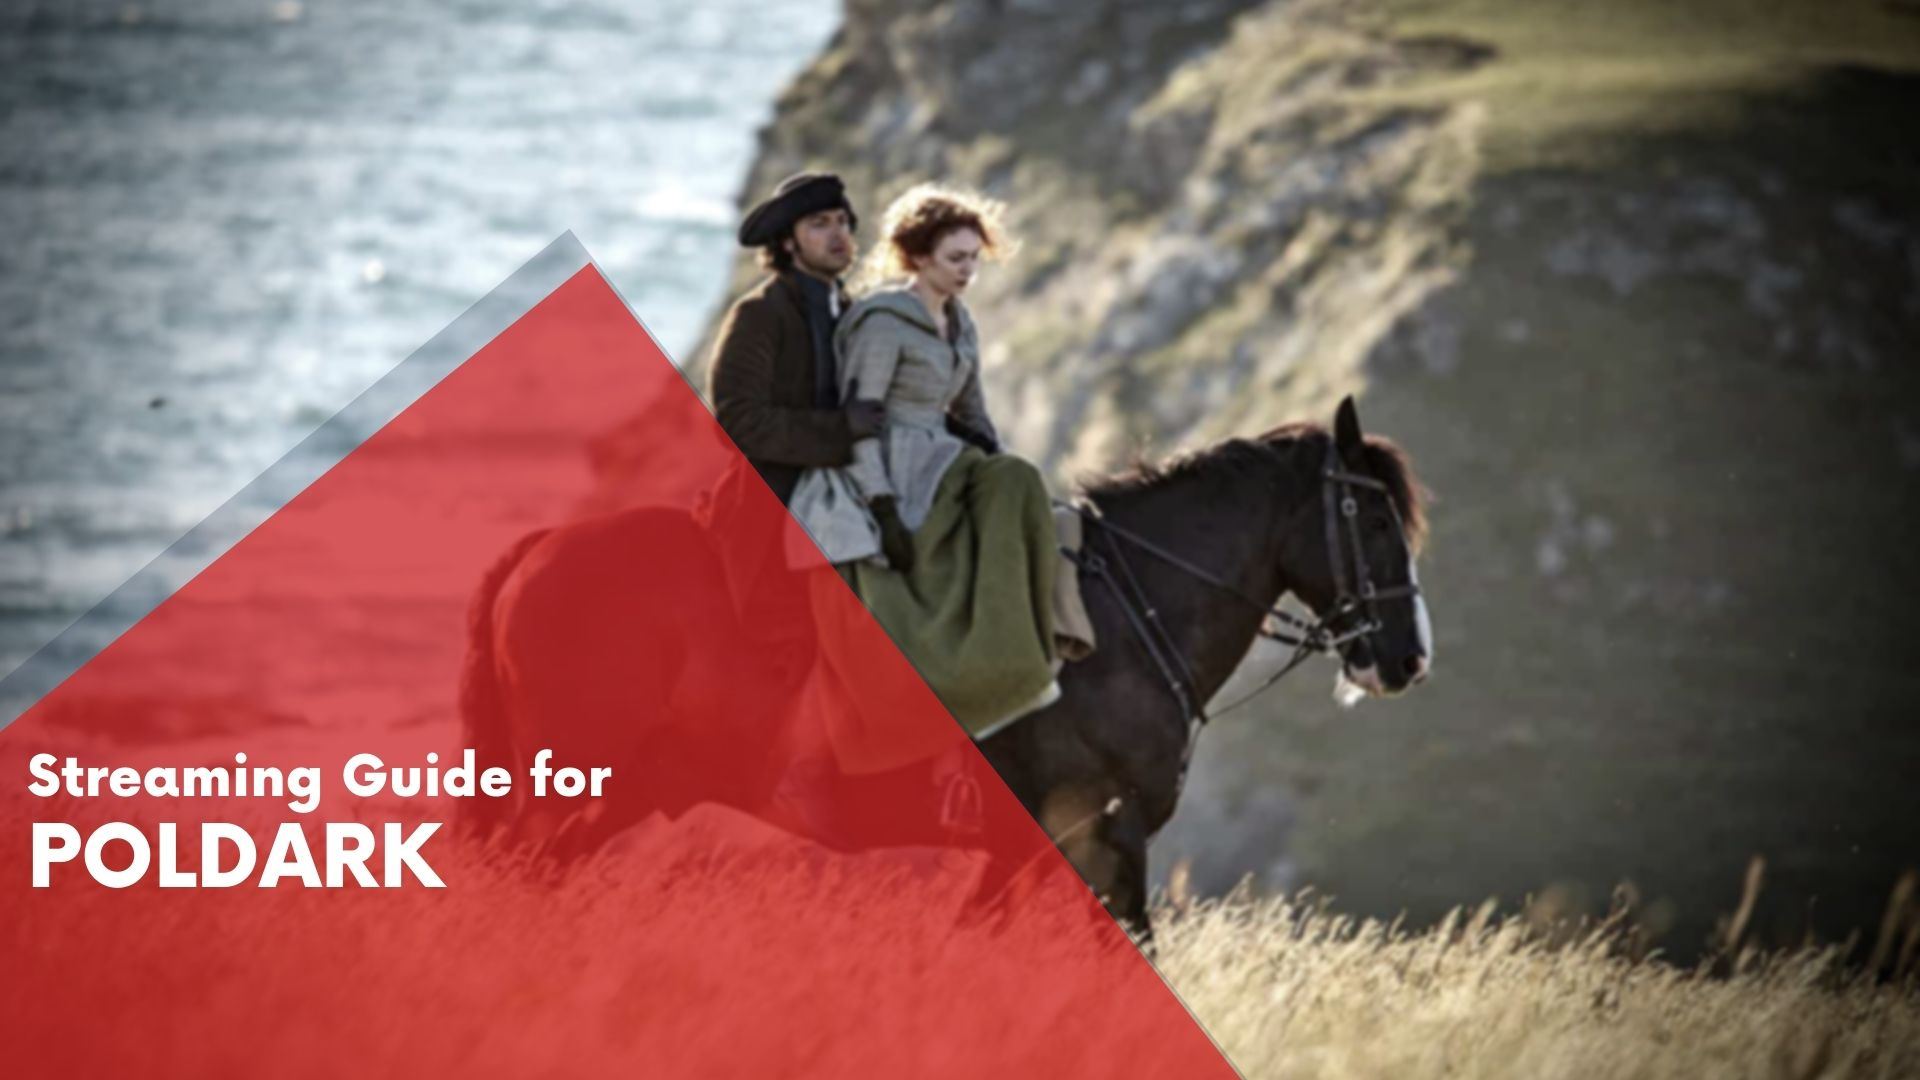 Answering if Poldark is available on Hulu